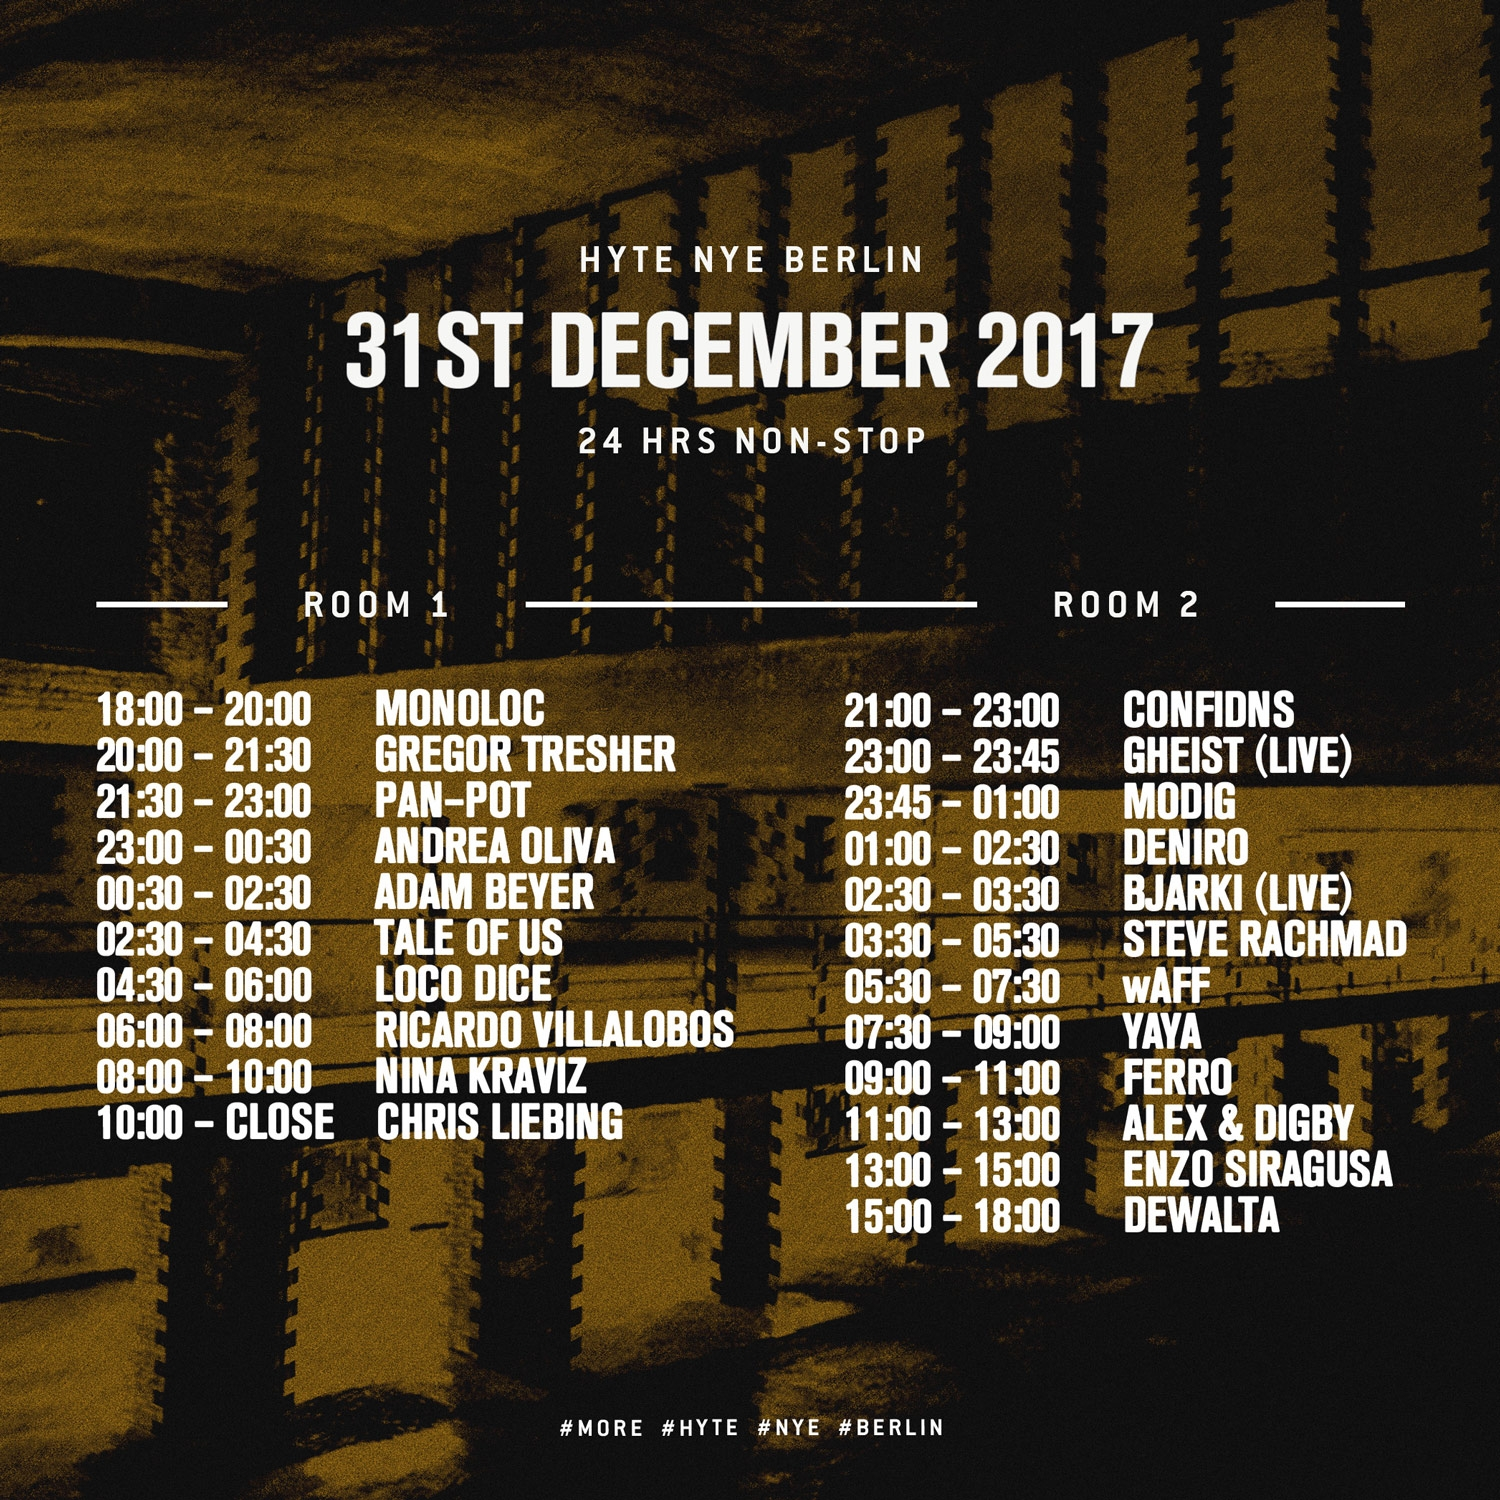 HYTE NYE Berlin 2017 Timetable